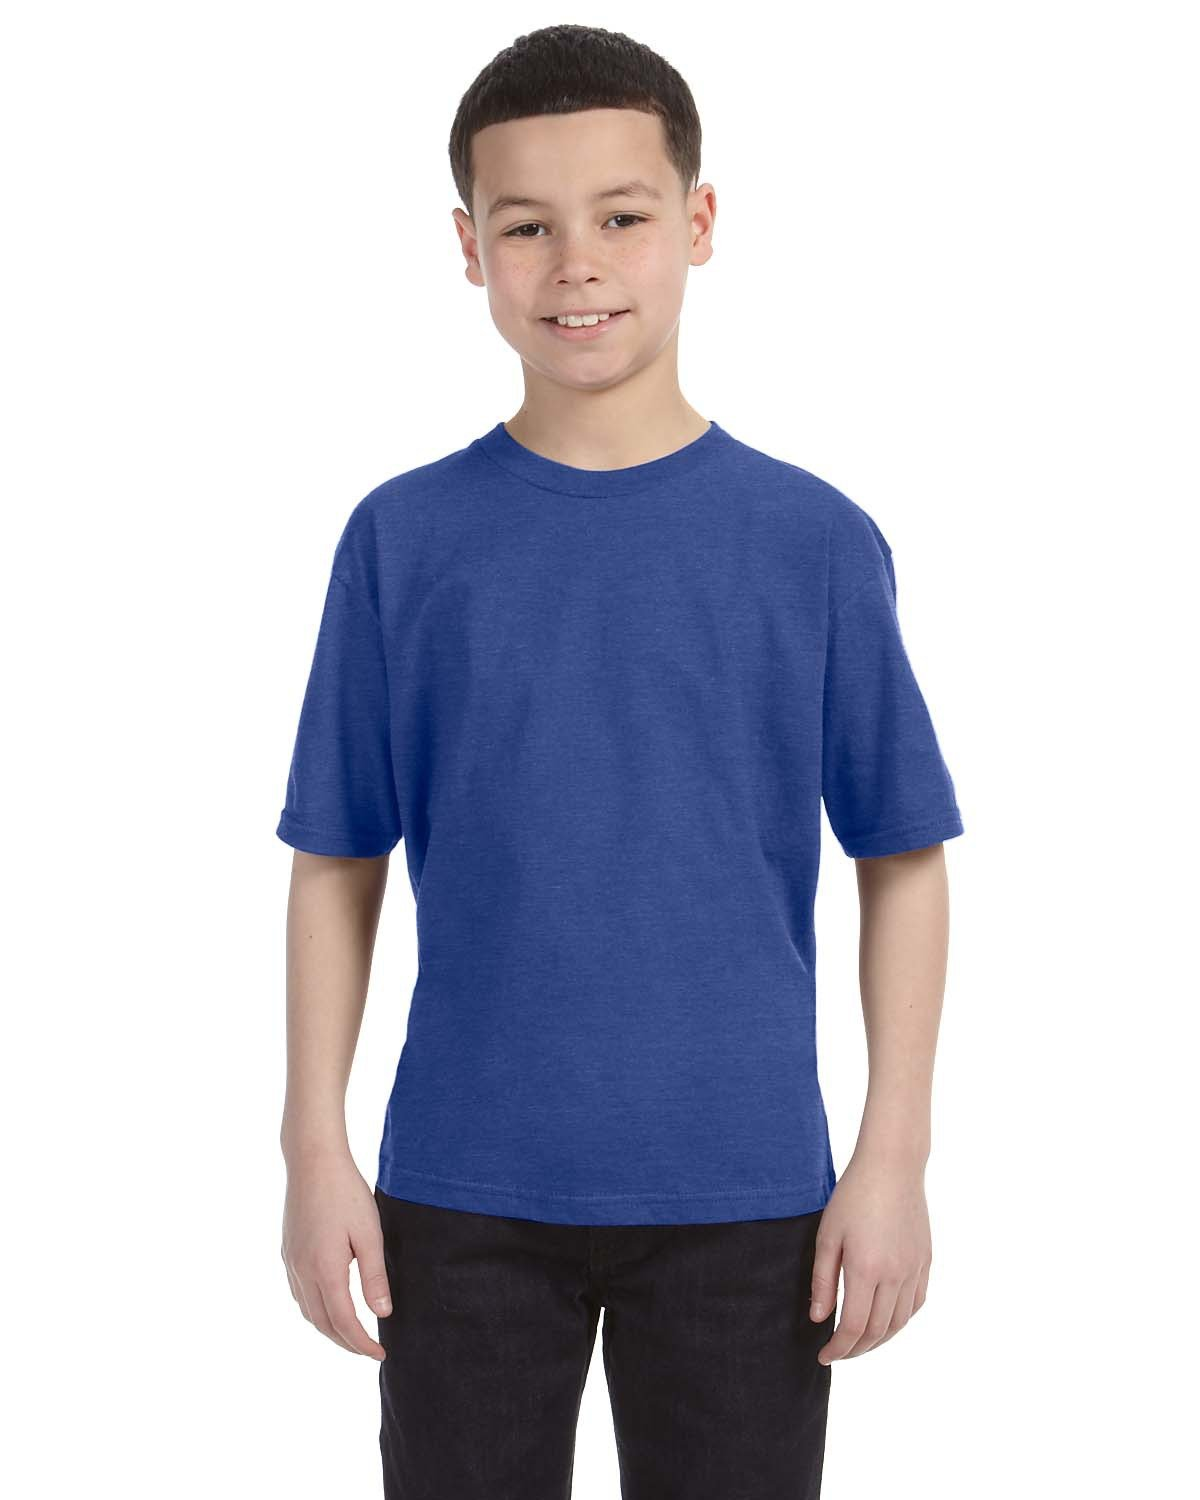 Anvil Youth Lightweight T-Shirt HEATHER BLUE